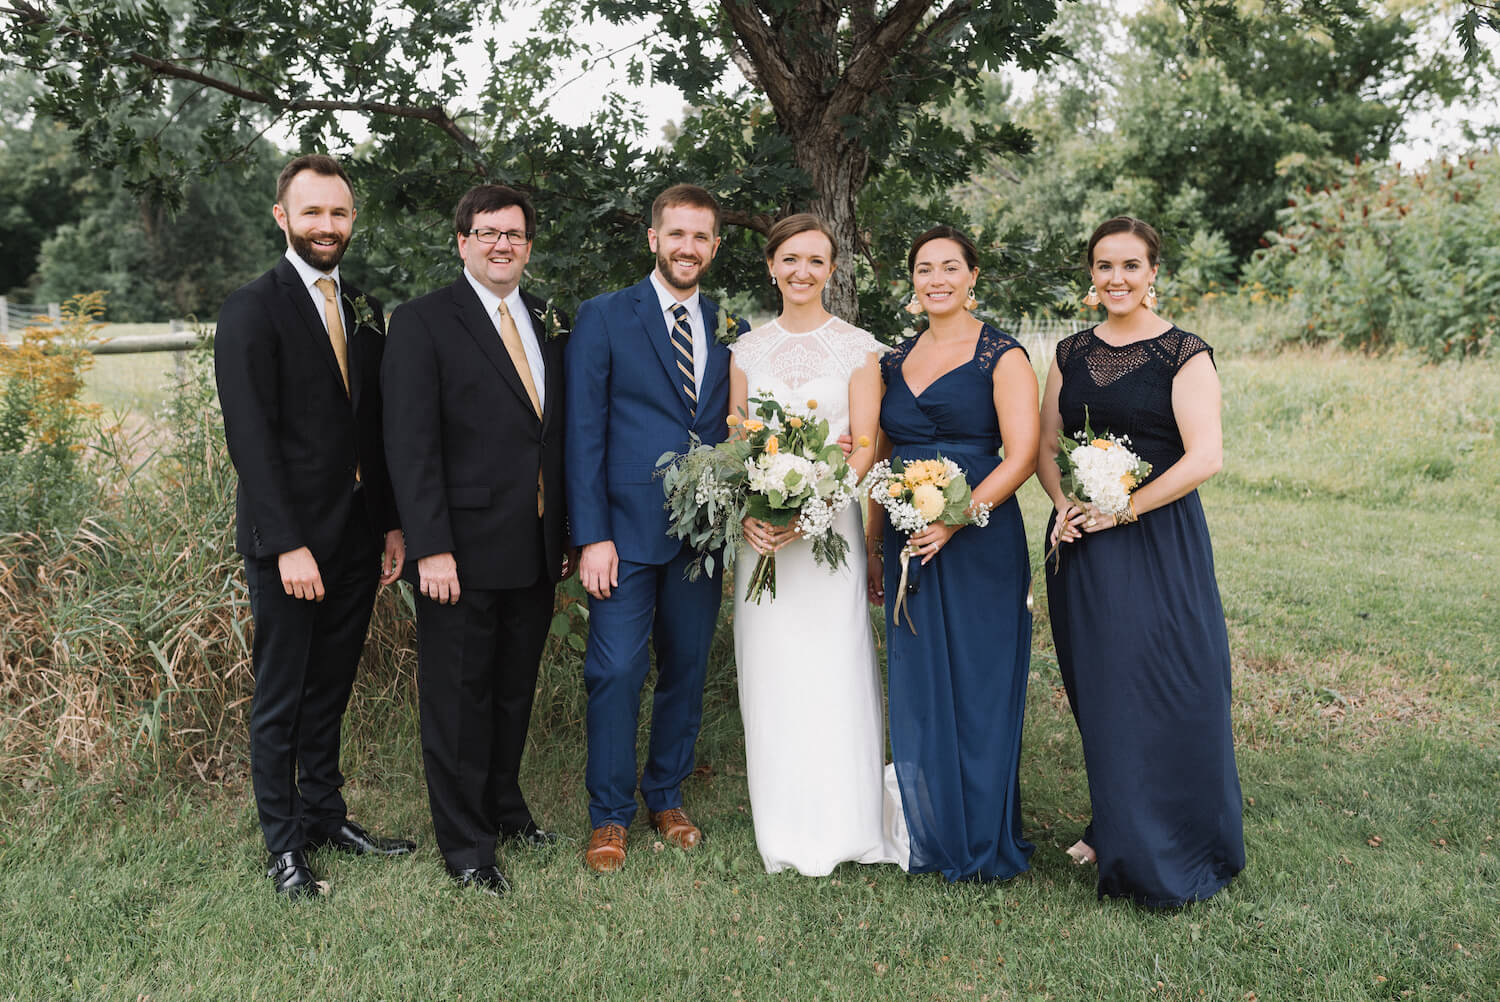 wedding party photos, dad is the best man | Jonny and Liz Minnesota Wedding Photographers | Sixpence day of coordinating at Gale Woods farm venue near the lake.JPG